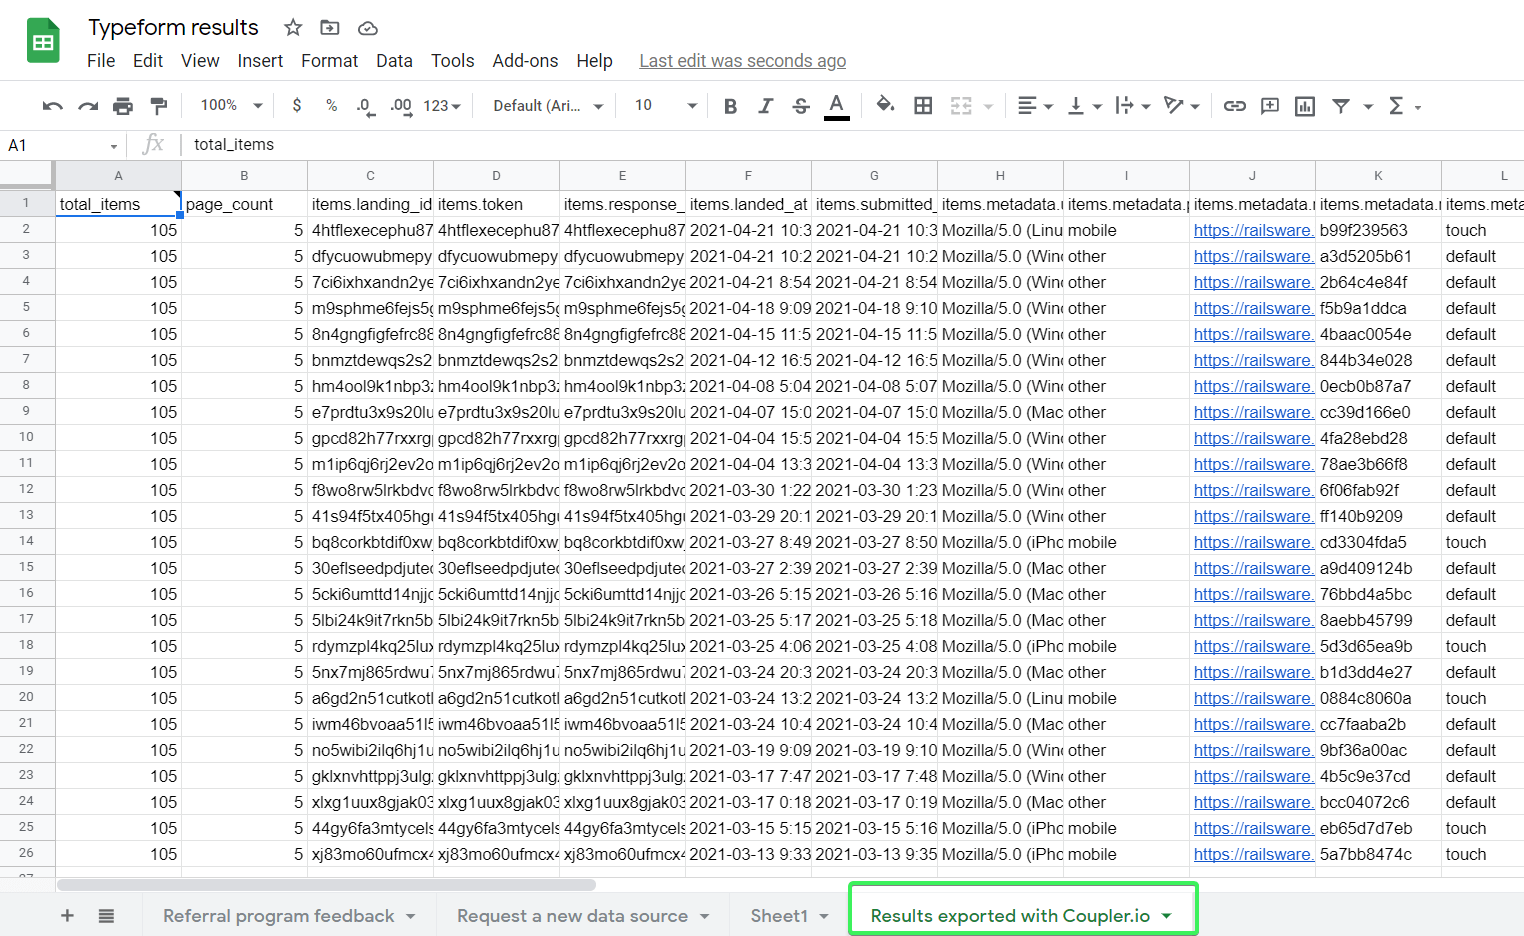 Typeform responses exported to Google Sheets